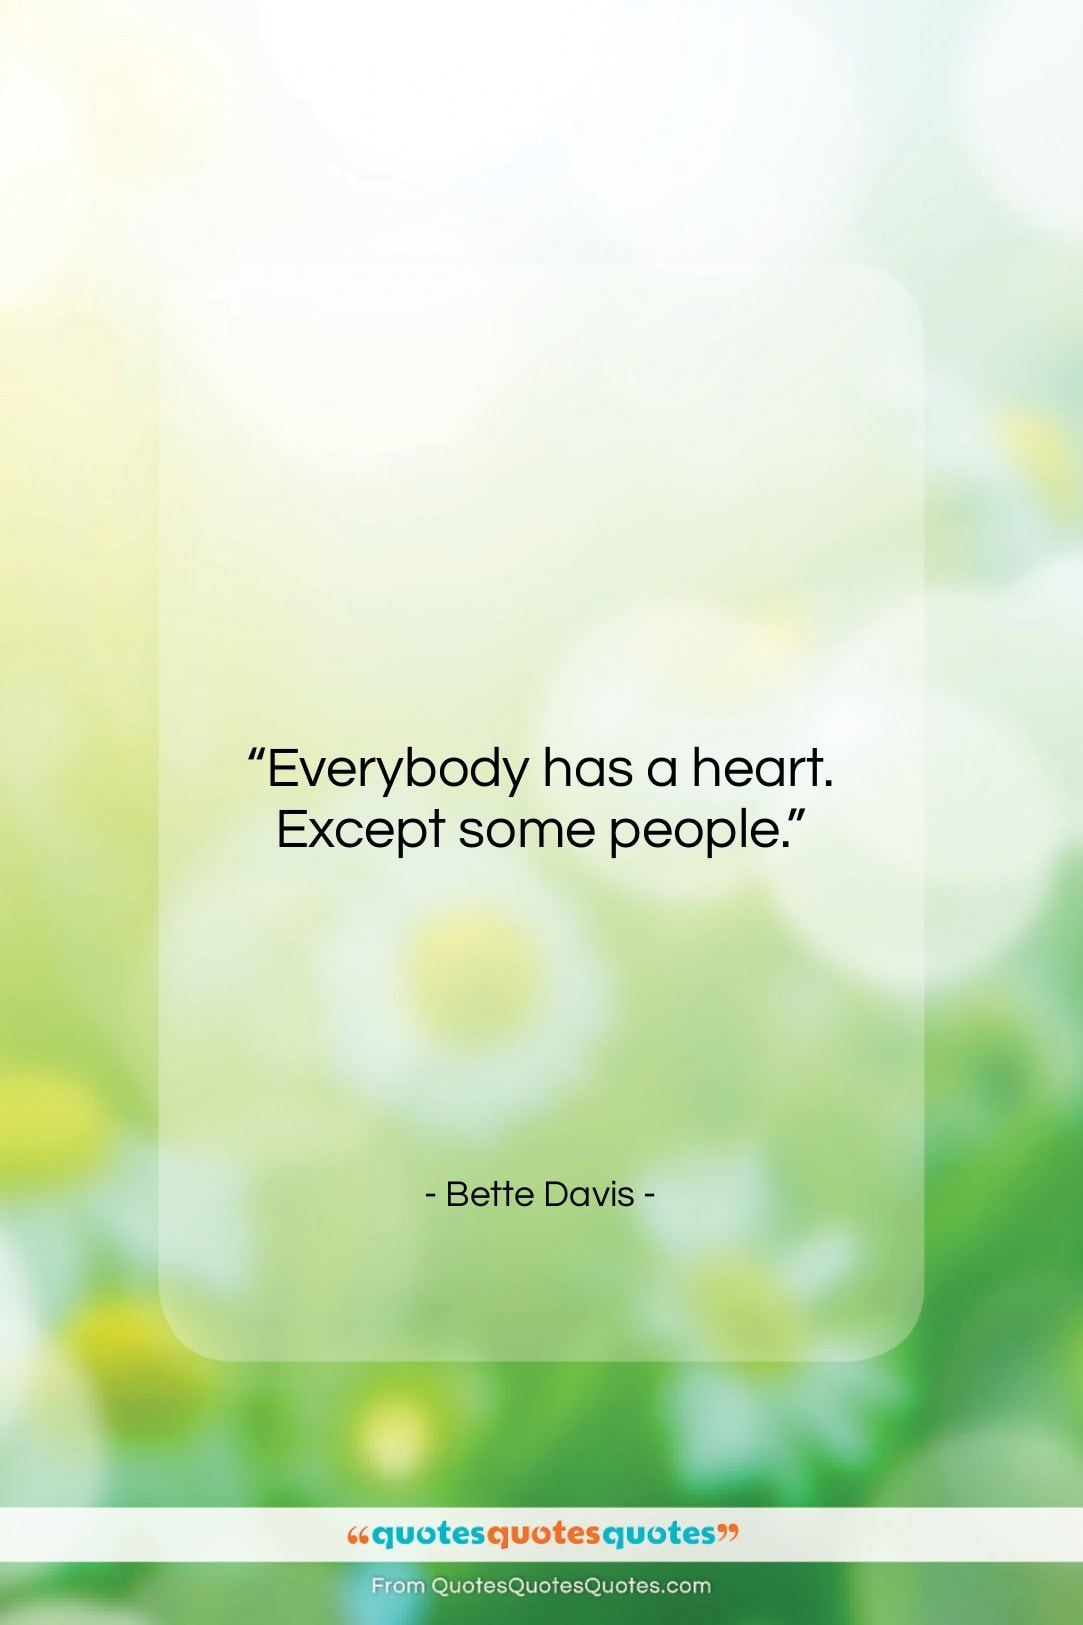 """Bette Davis quote: """"Everybody has a heart. Except some people….""""- at QuotesQuotesQuotes.com"""